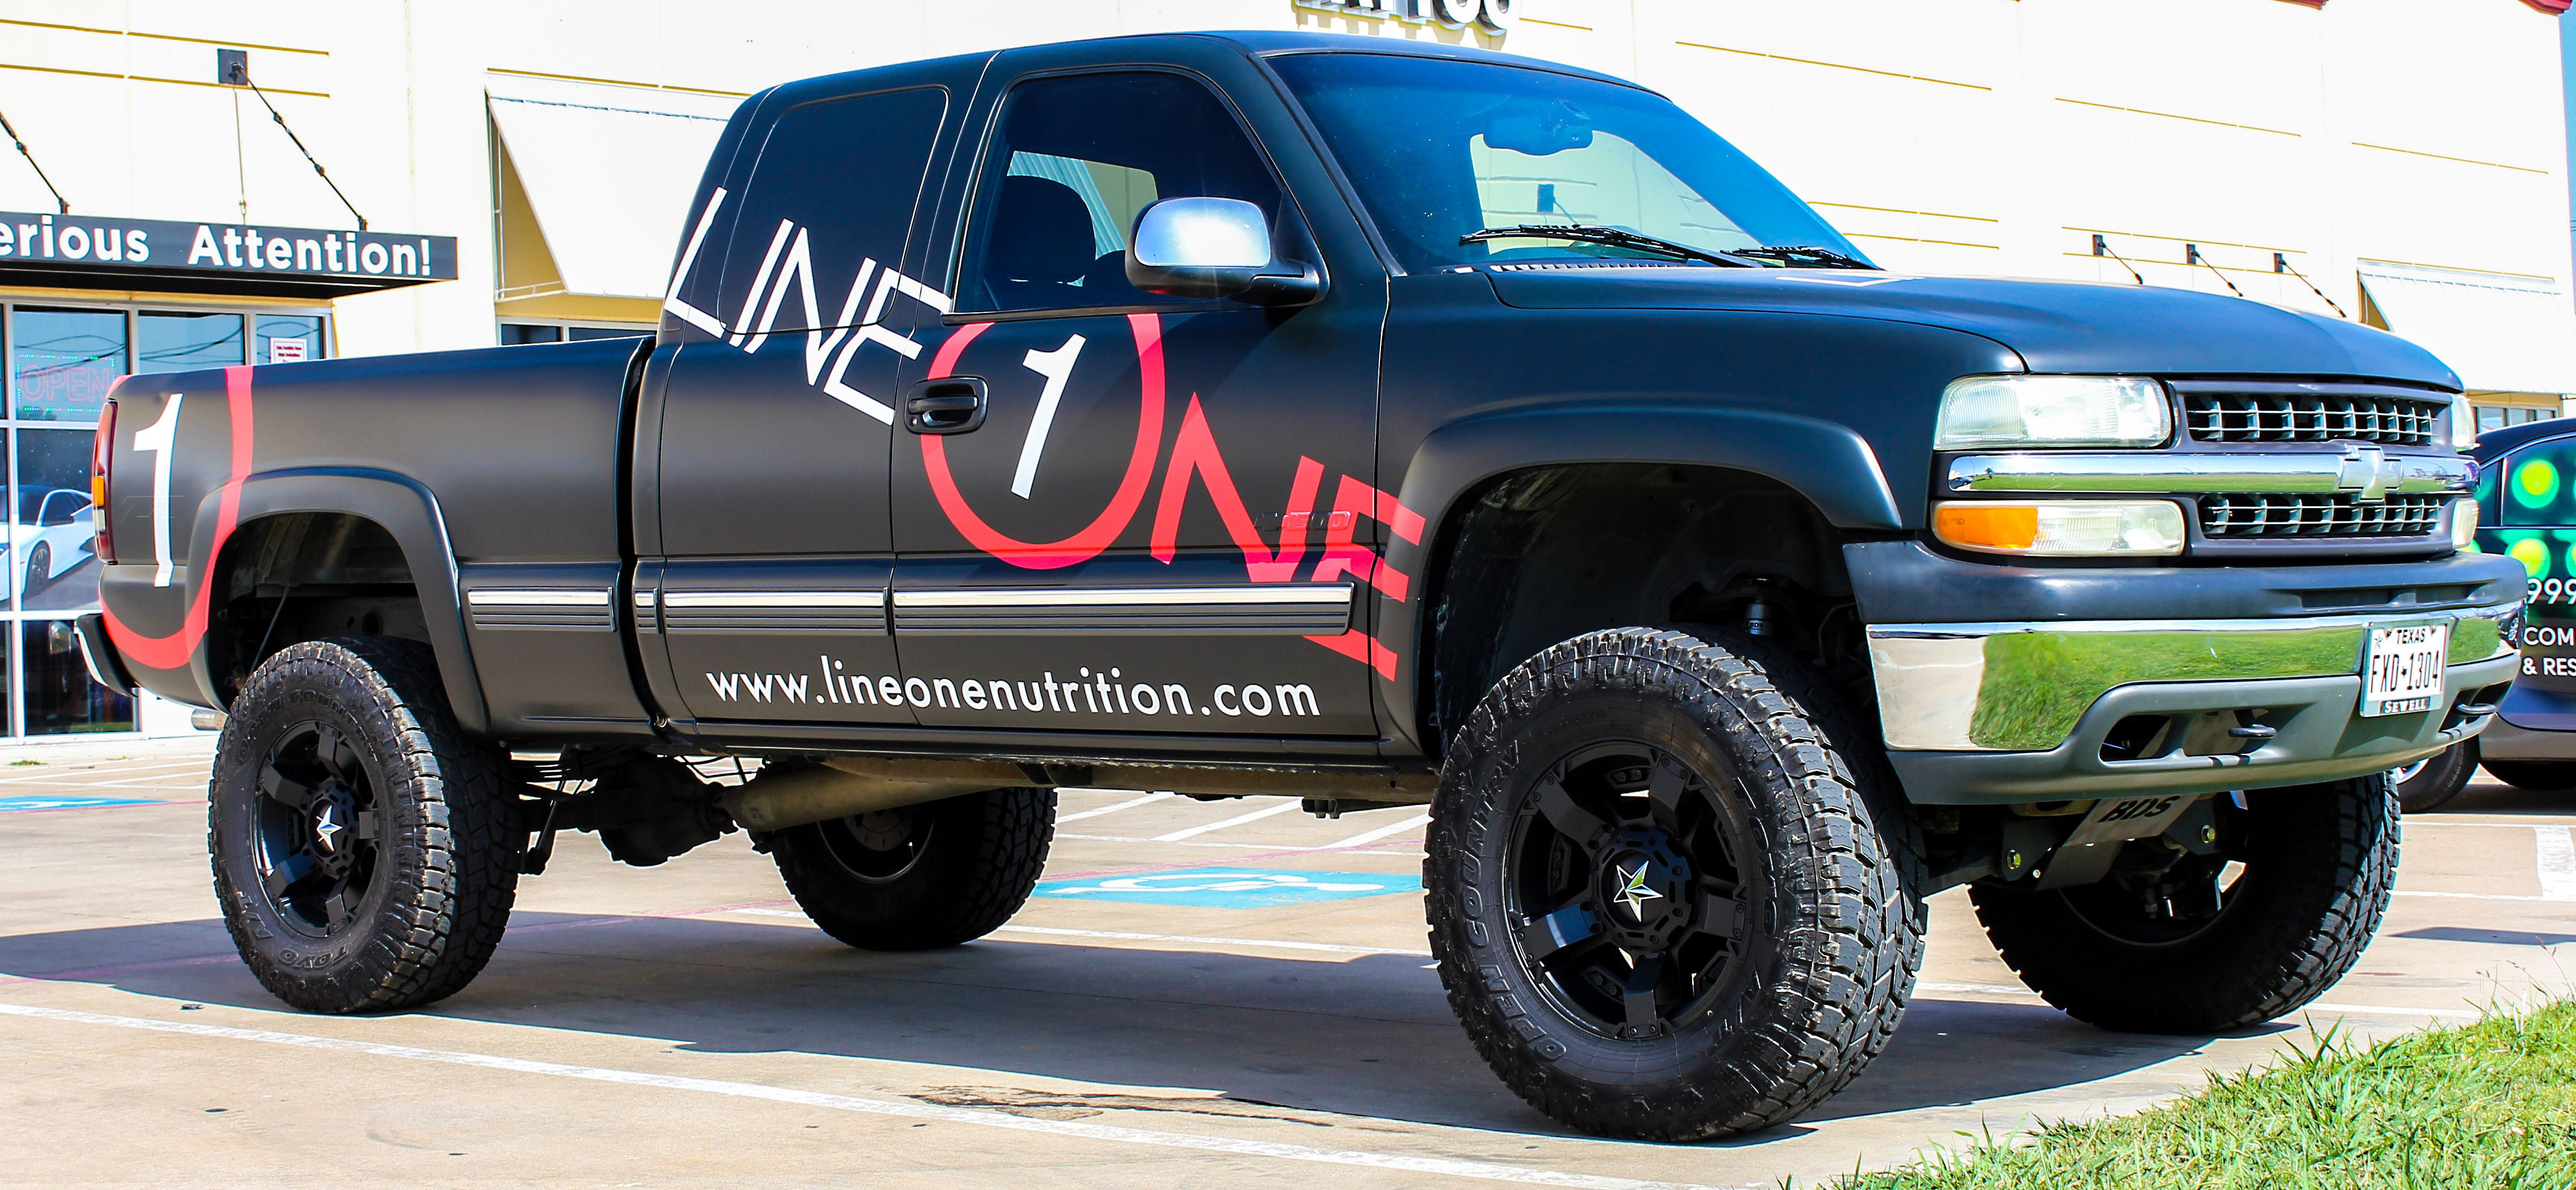 Matte Black Chevy Truck With Gloss Lettering Commercial Vehicle Car Wrap Trucks